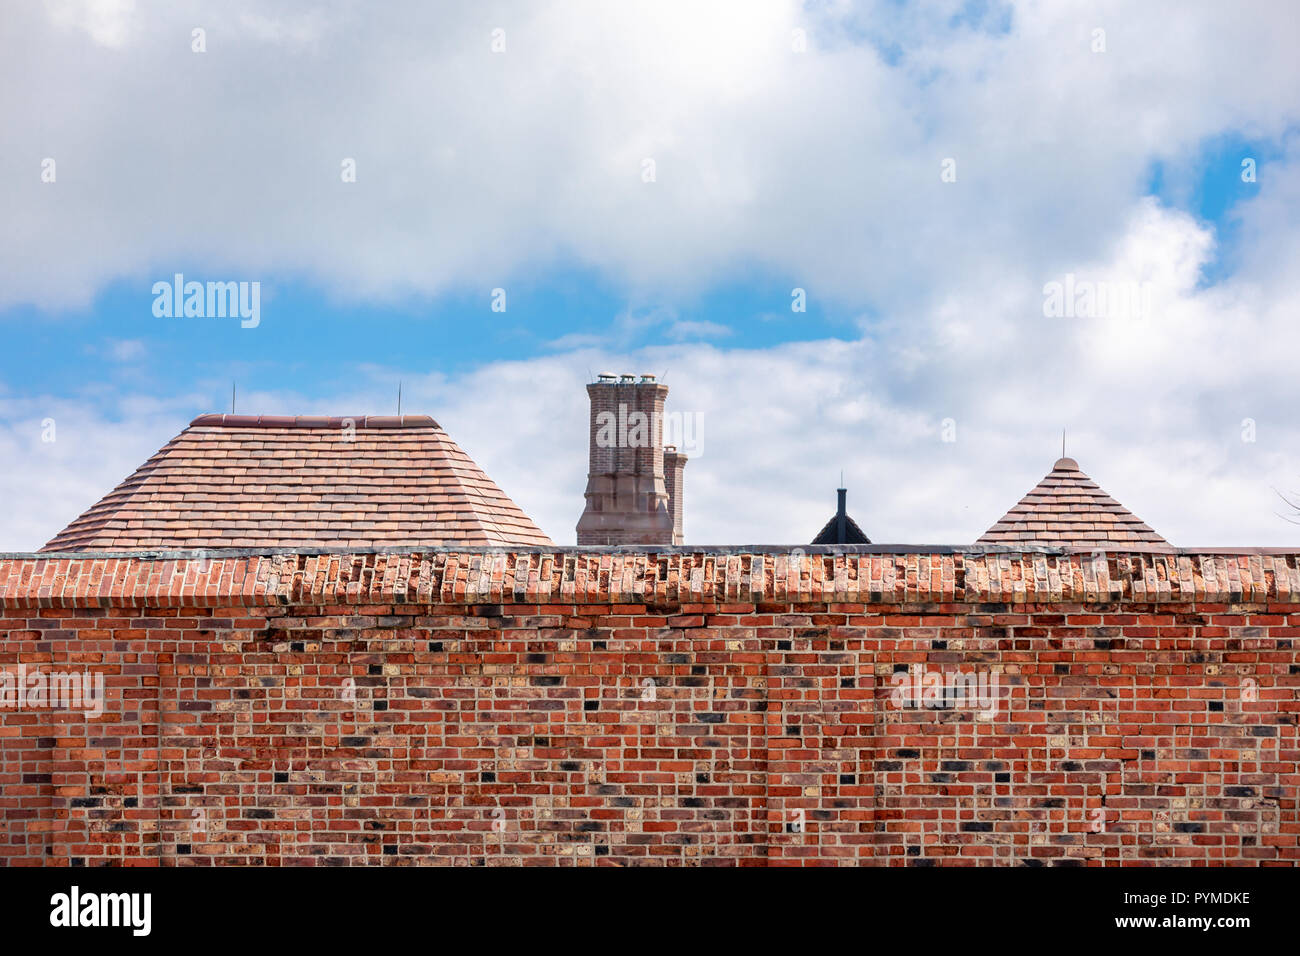 brick wall with the roofs of buildings on the other side - Stock Image